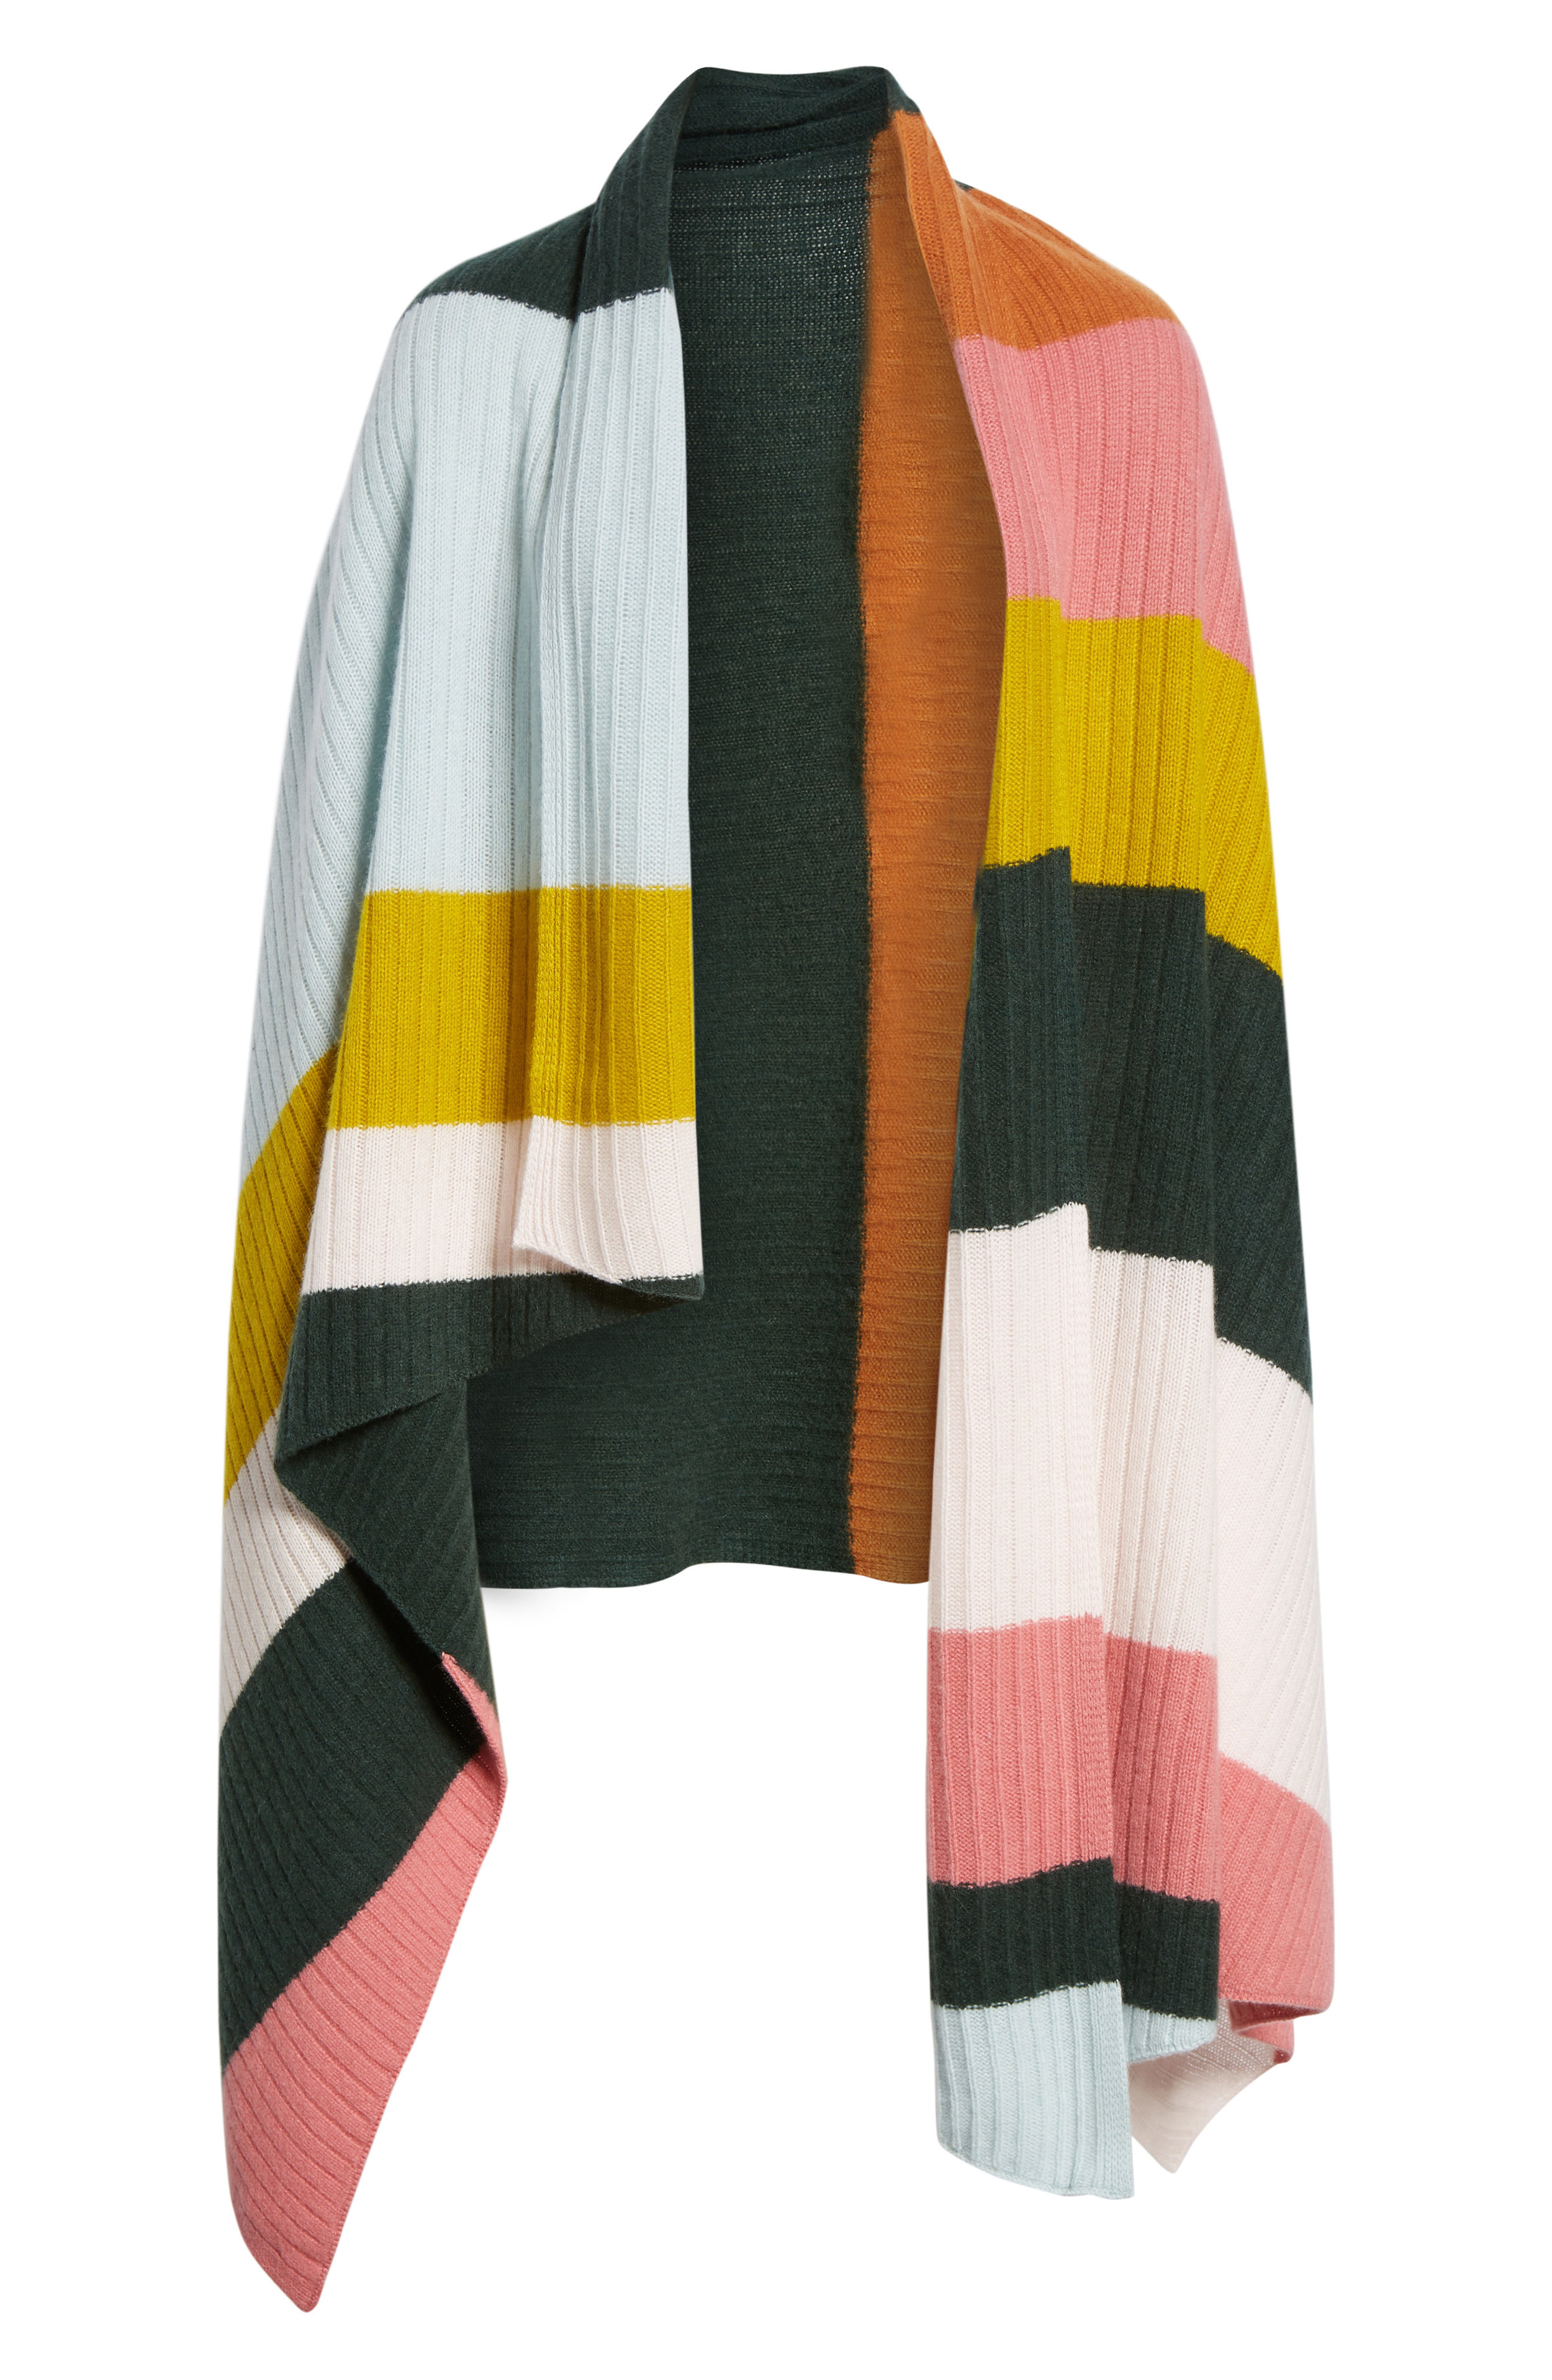 Atlantic_Pacific_Halogen_nordstrom_blair_eadie_fashion_blogger_capsule_collection_fall_october_2018_winter_ootd_striped_scarf.jpg